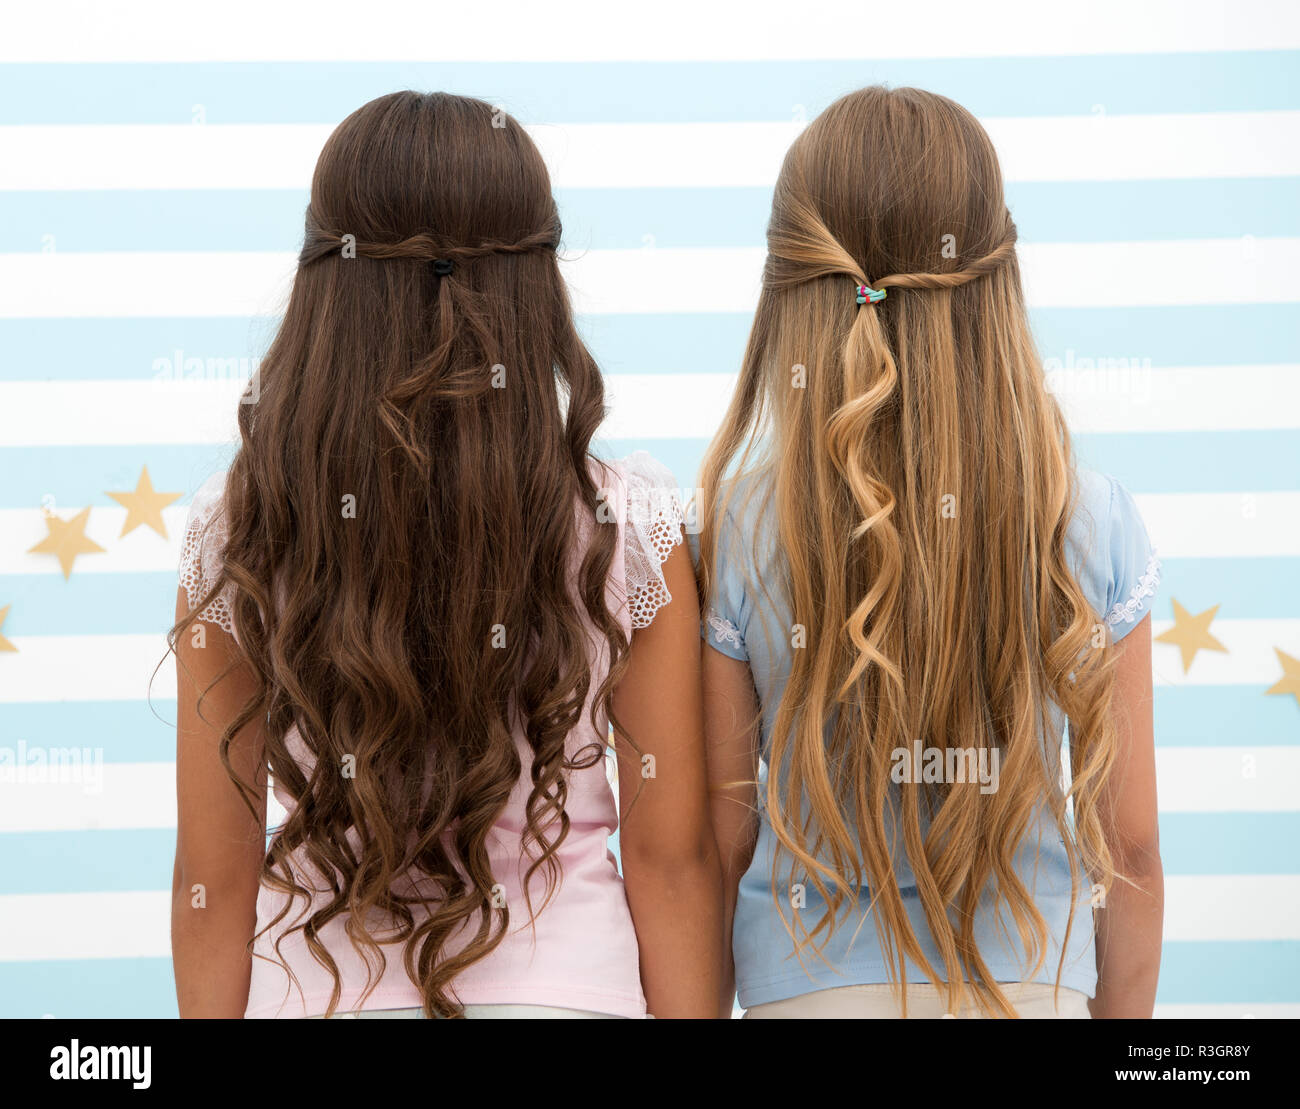 Hairdresser Salon Services Two Little Girls Kids With Long Hair At Hairdresser Little Girls With Long Curly Hair Long And Healthy Hair Kertatine M Stock Photo Alamy